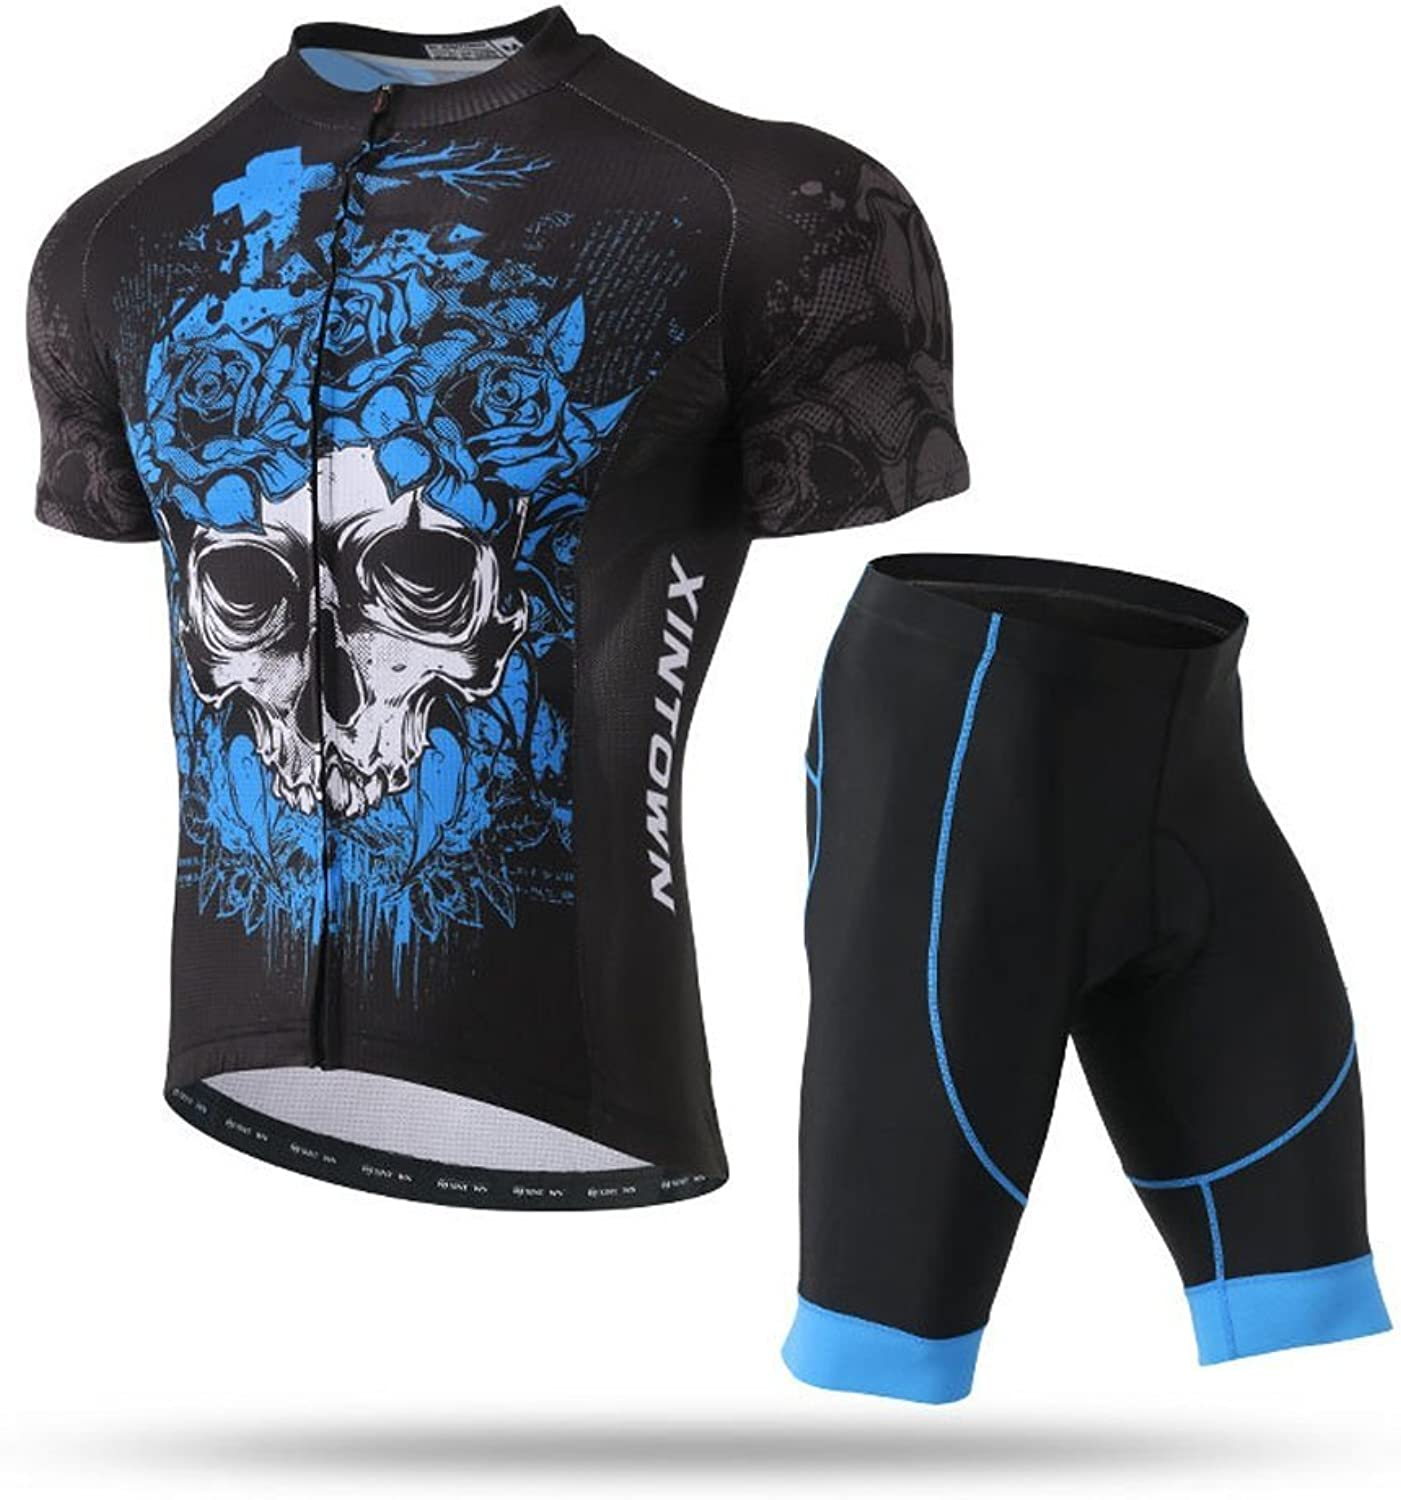 Pinjeer blueee Enchantress Skull Style Latest Dresses in This Summer,Cycling Clothing Sets Trousers AntiSlip Strap Men Outdoors Riding,Sports Boys Jersey Shorts Men Plus Size